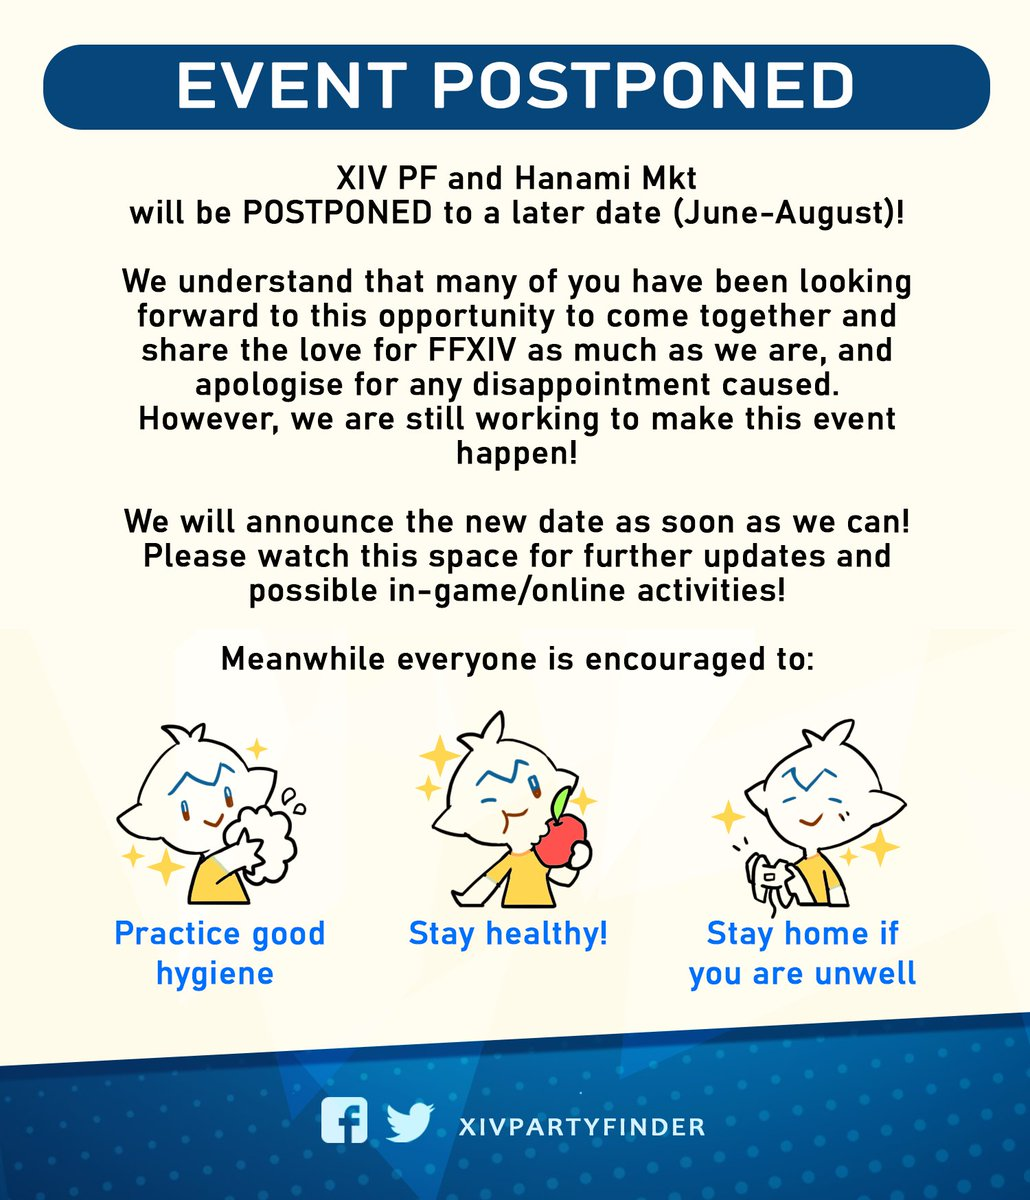 With the current global situation of COVID-19 and the DORSCON level in Singapore being at Orange level, we will be postponing XIVPF to a later date(either June or August 2020) pic.twitter.com/emh9cXgynq